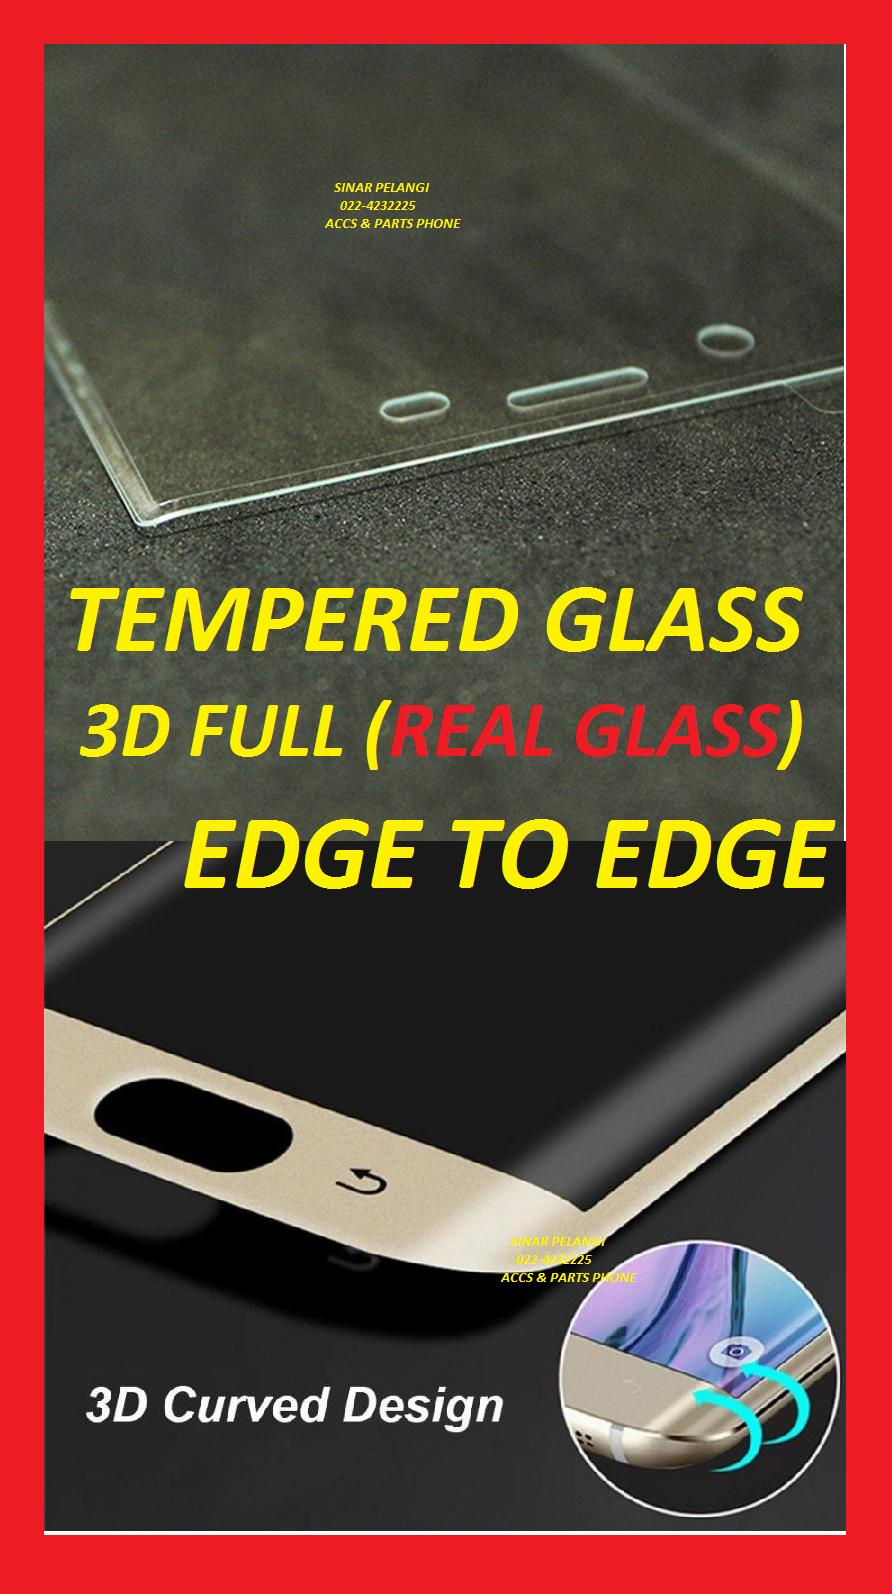 SAMSUNG S6 G920 WHITE 3D FULL COVER CURVED CURVE 2.5D ROUND EDGE TO EDGE LENGKUNG CEKUNG ANTI GORES TEMPERED TEMPER GLASS KACA HIFI 906064